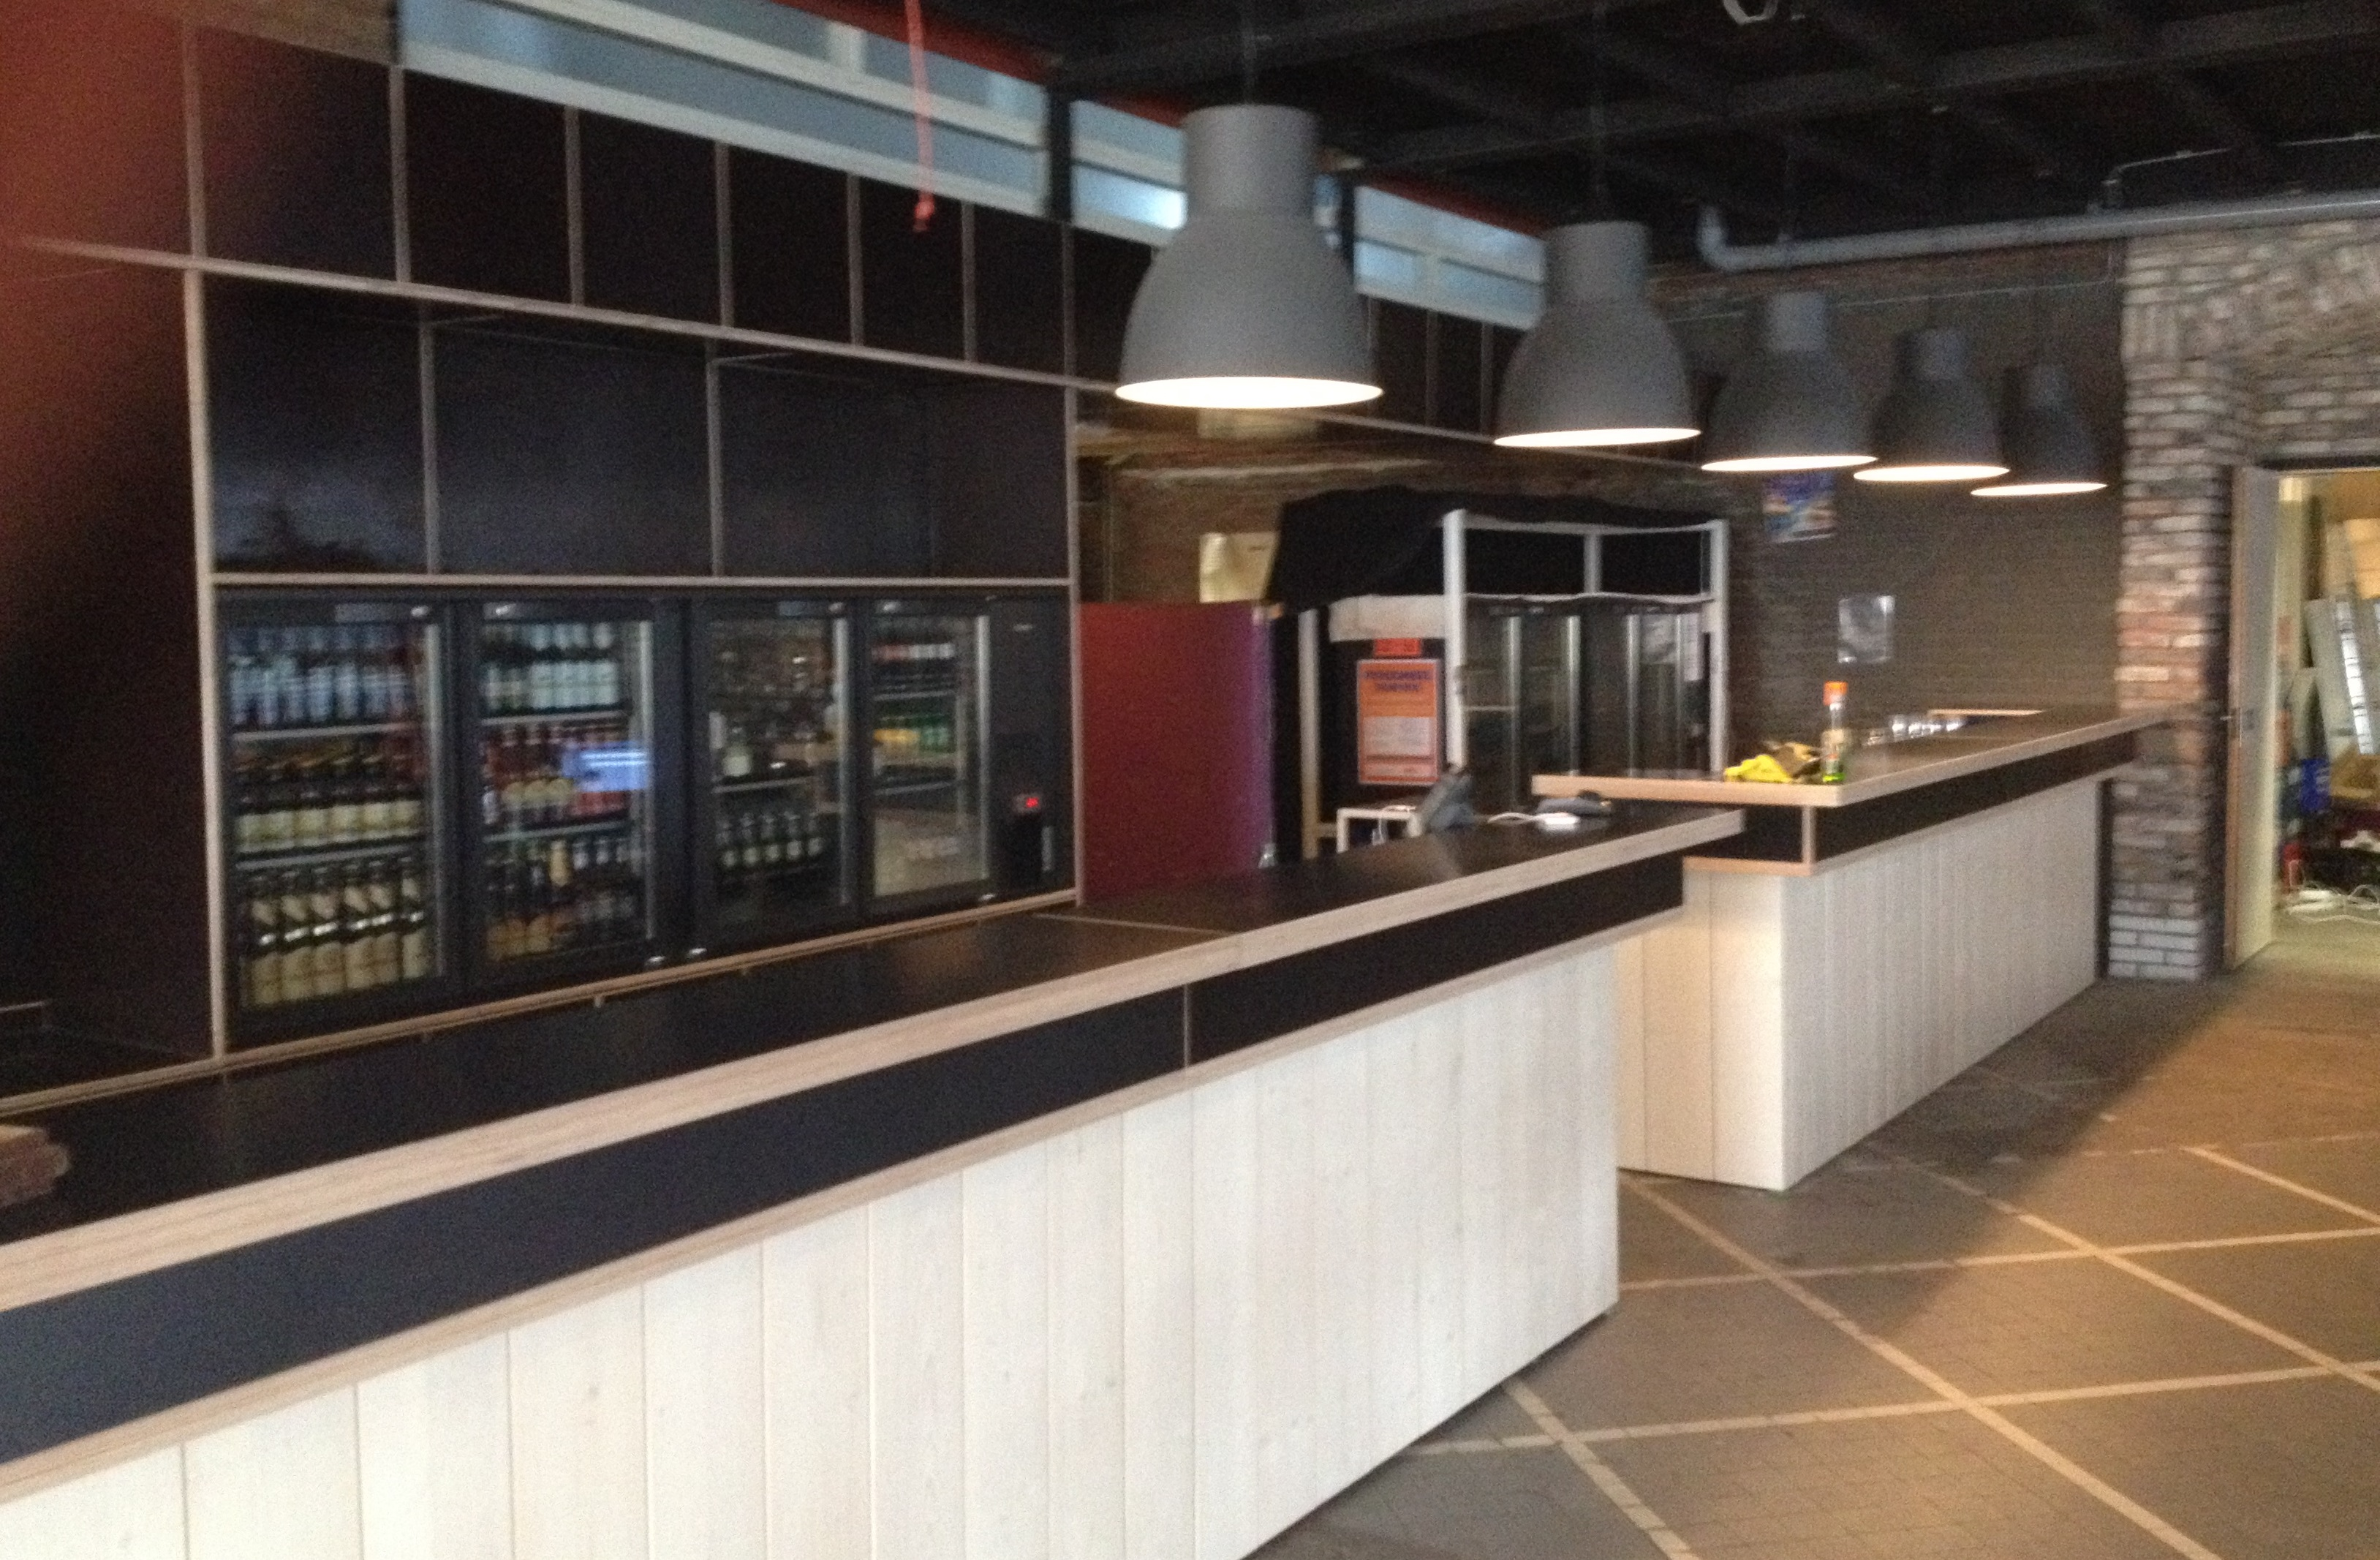 The Meeting Place For Internationals Hub At Vestdijk Eindhoven Finally Has A Real Bar